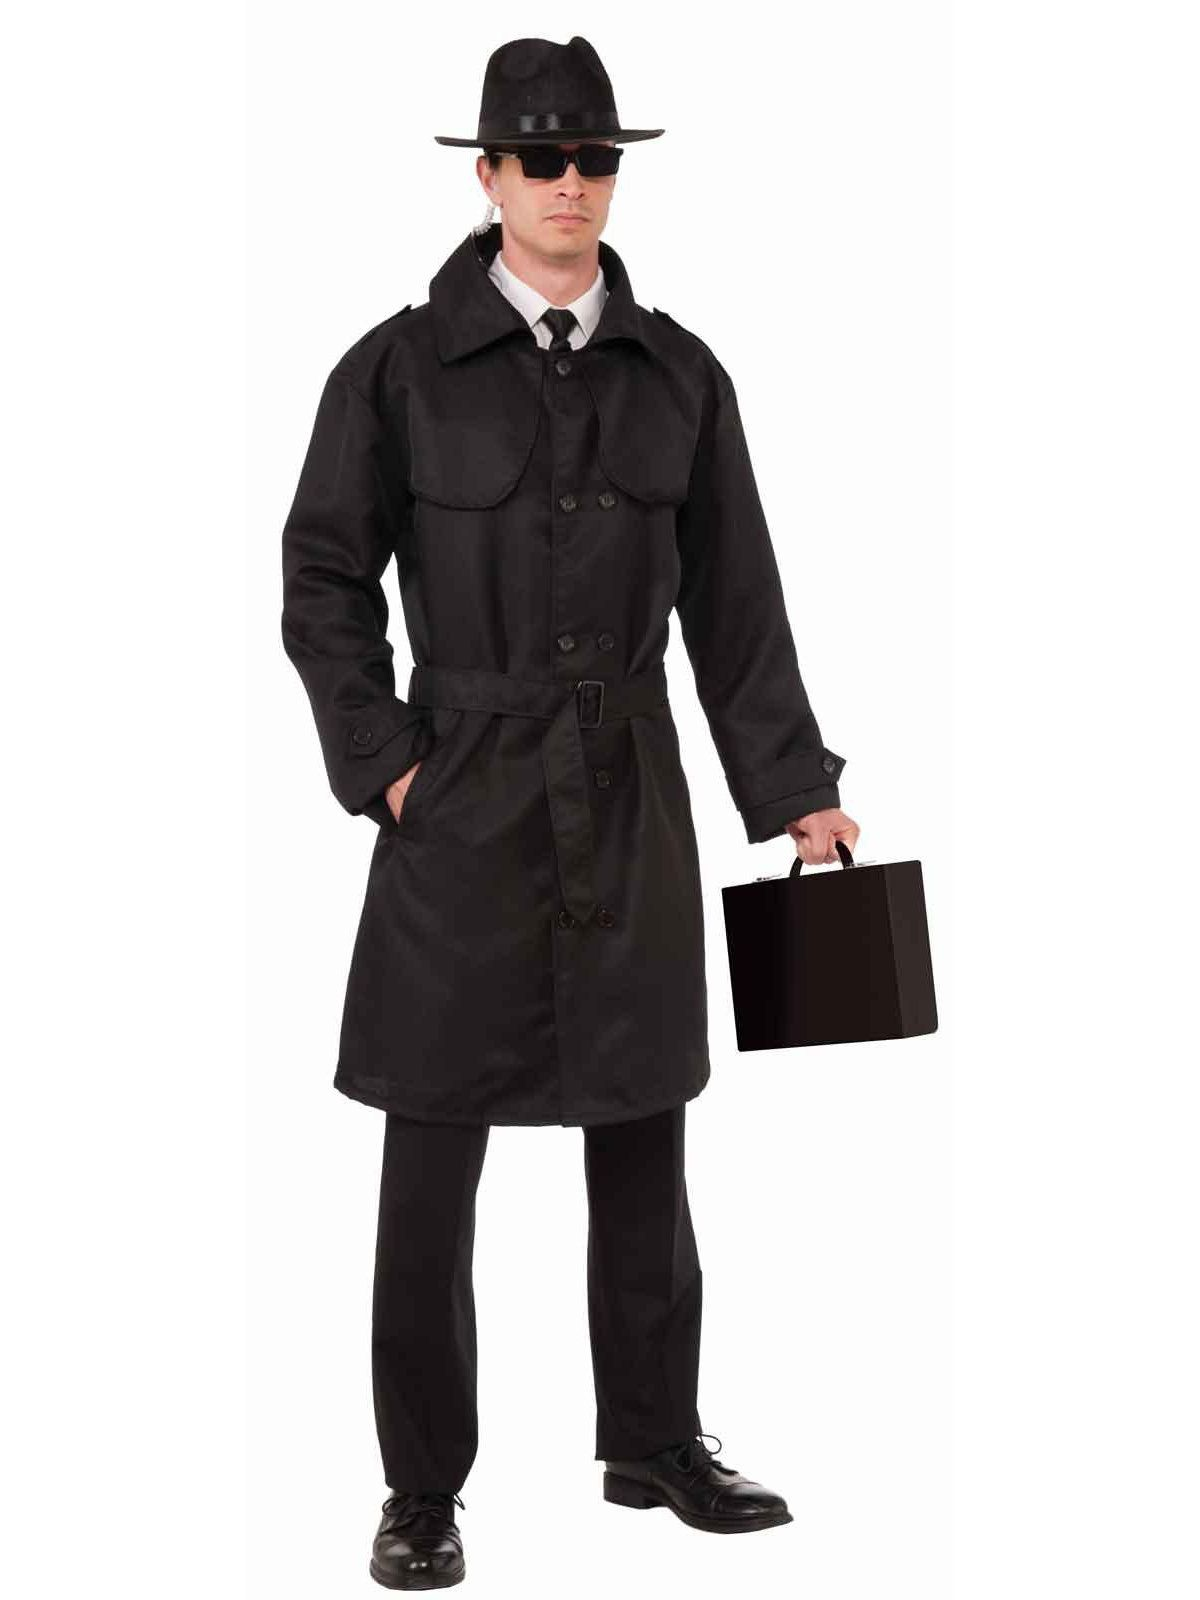 89336e7e61 Trench Coat for Spy - Mens Costumes for 2018